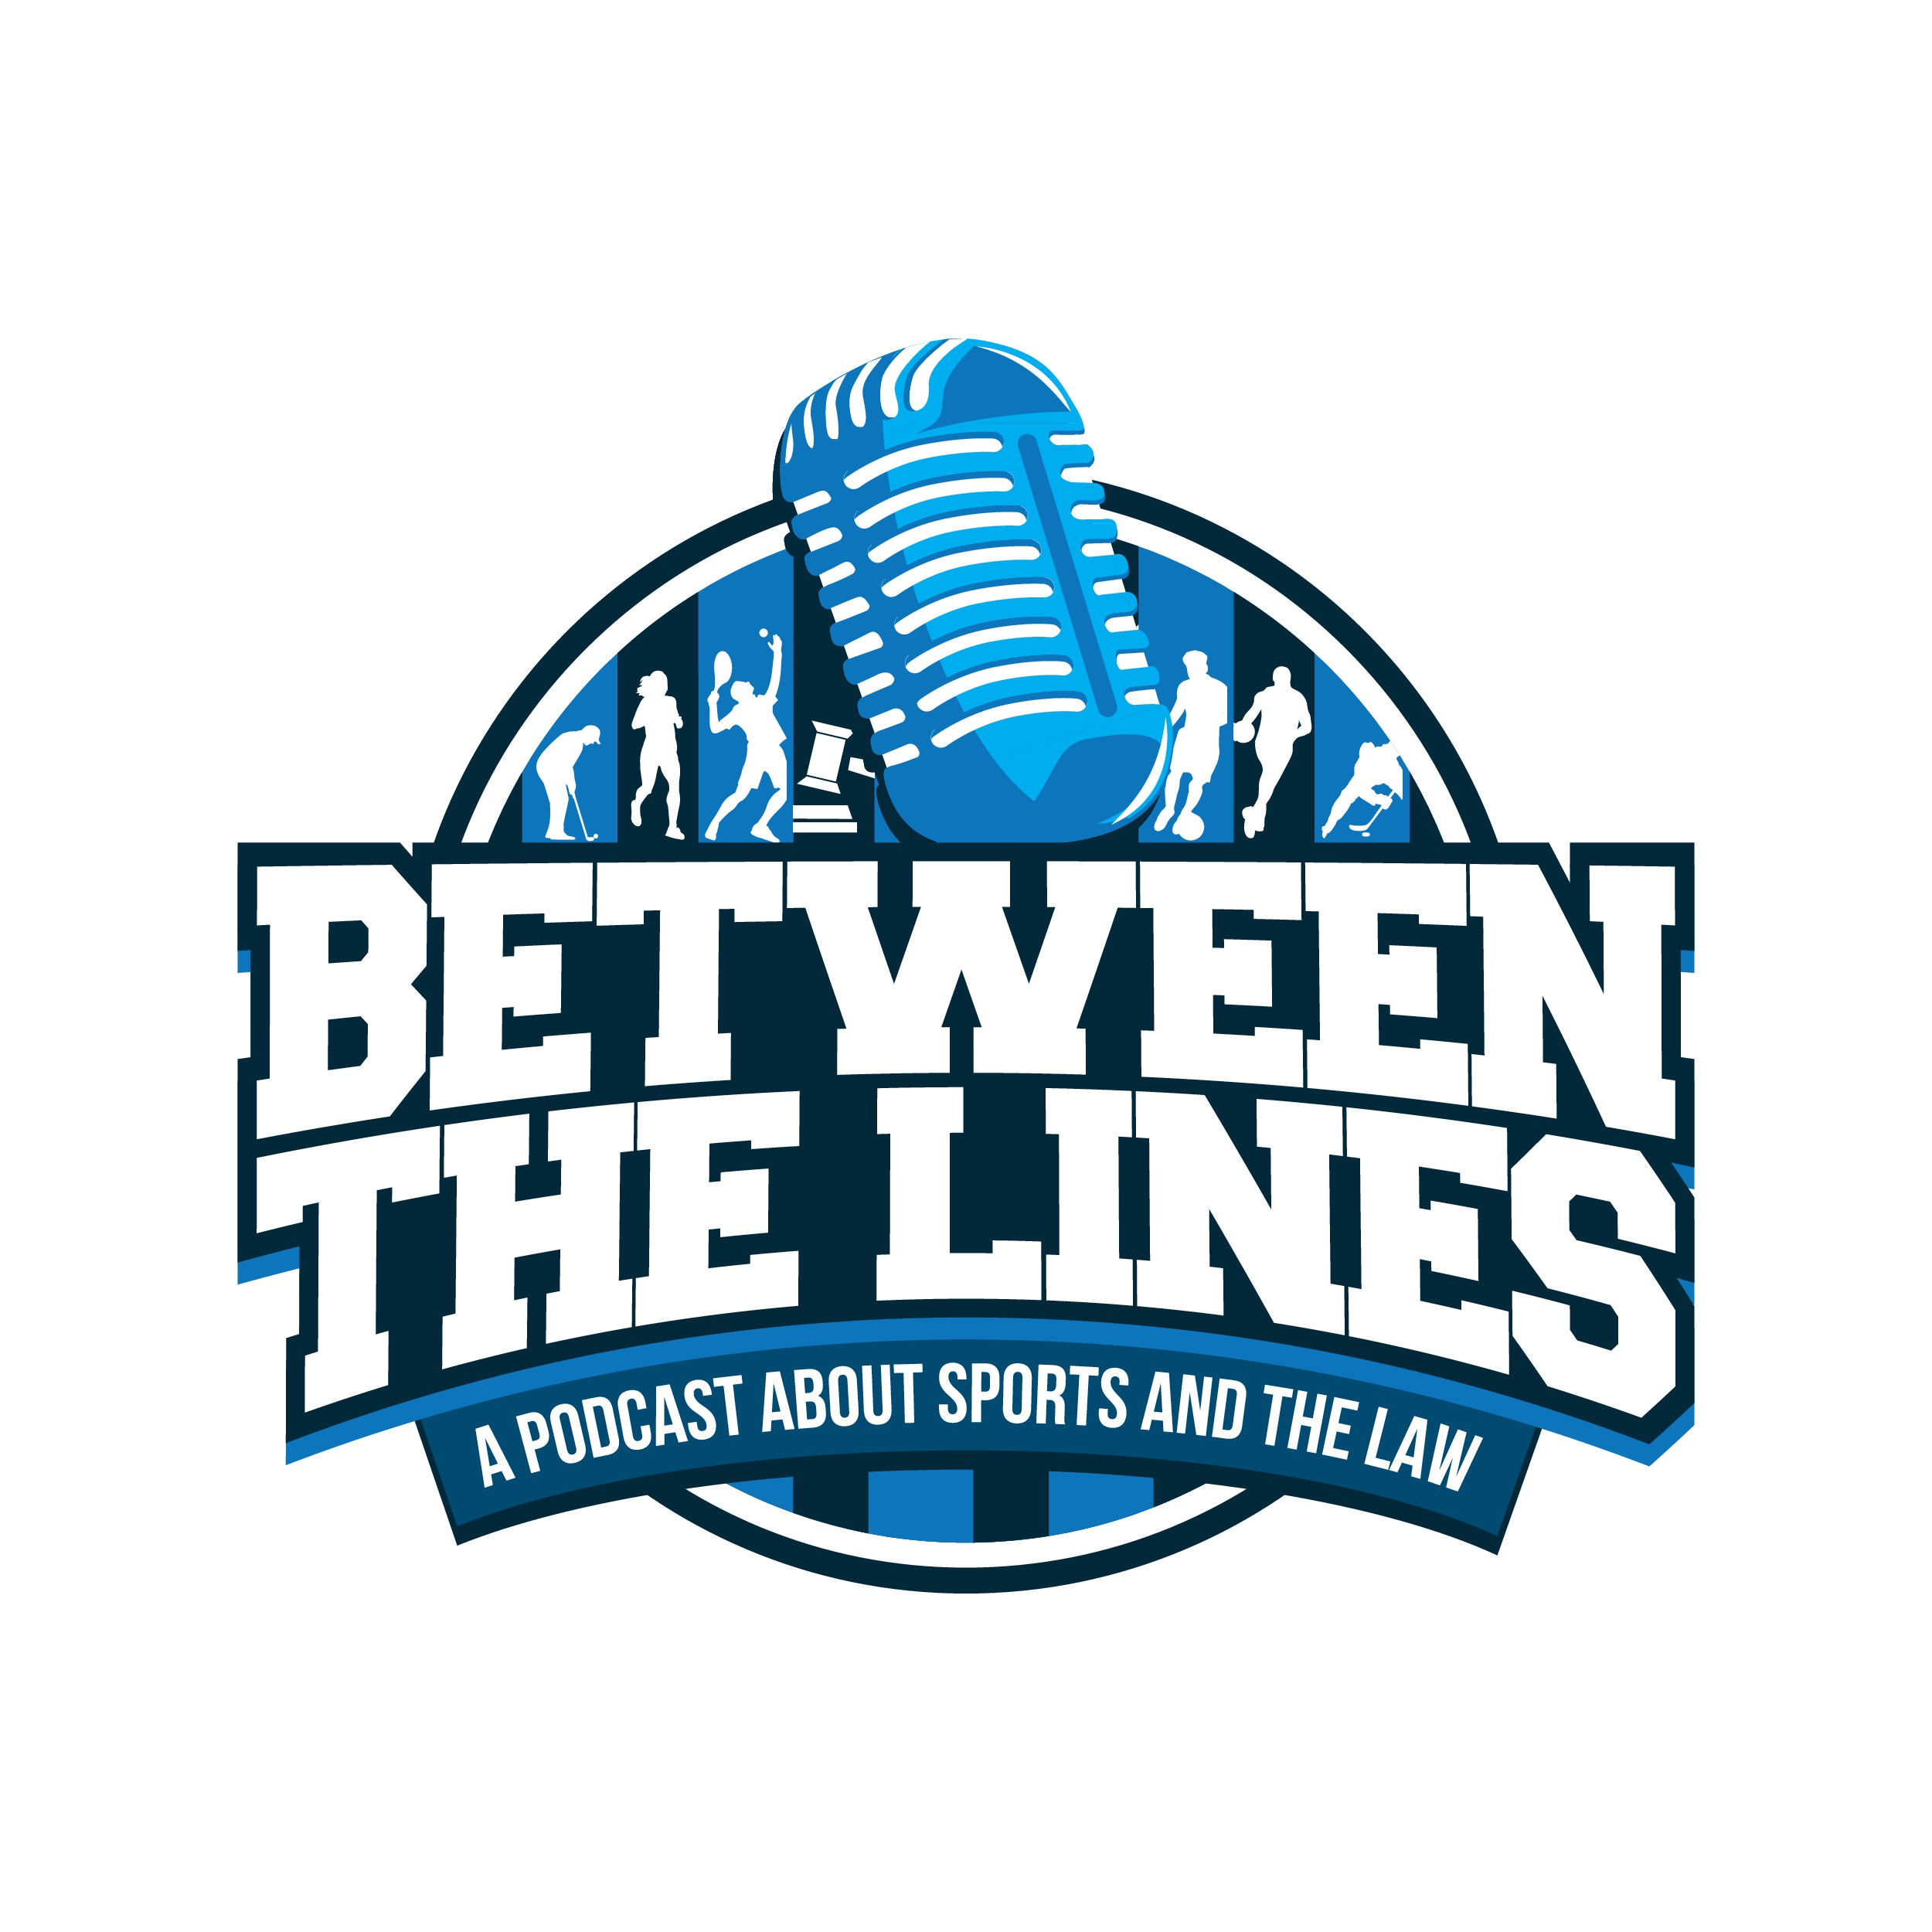 Design a logo for a popular new podcast about sports and the law